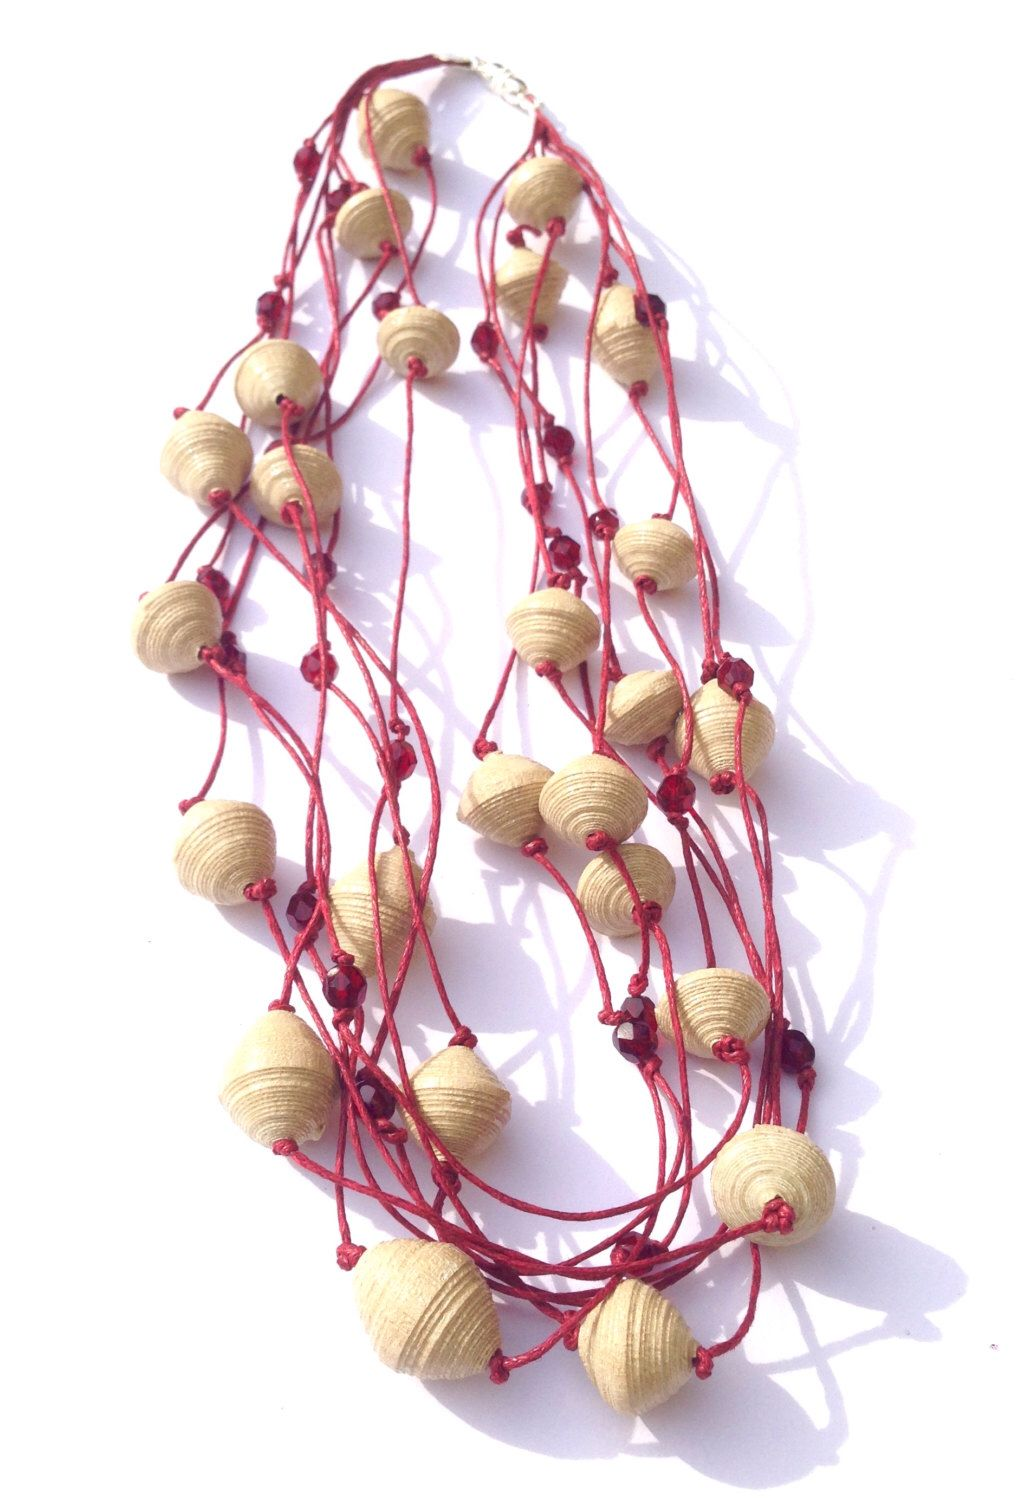 Paper necklace with red stand  Etsy https://www.etsy.com/it/listing/463871269/collana-rossa-a-piu-fili-con-perle-di